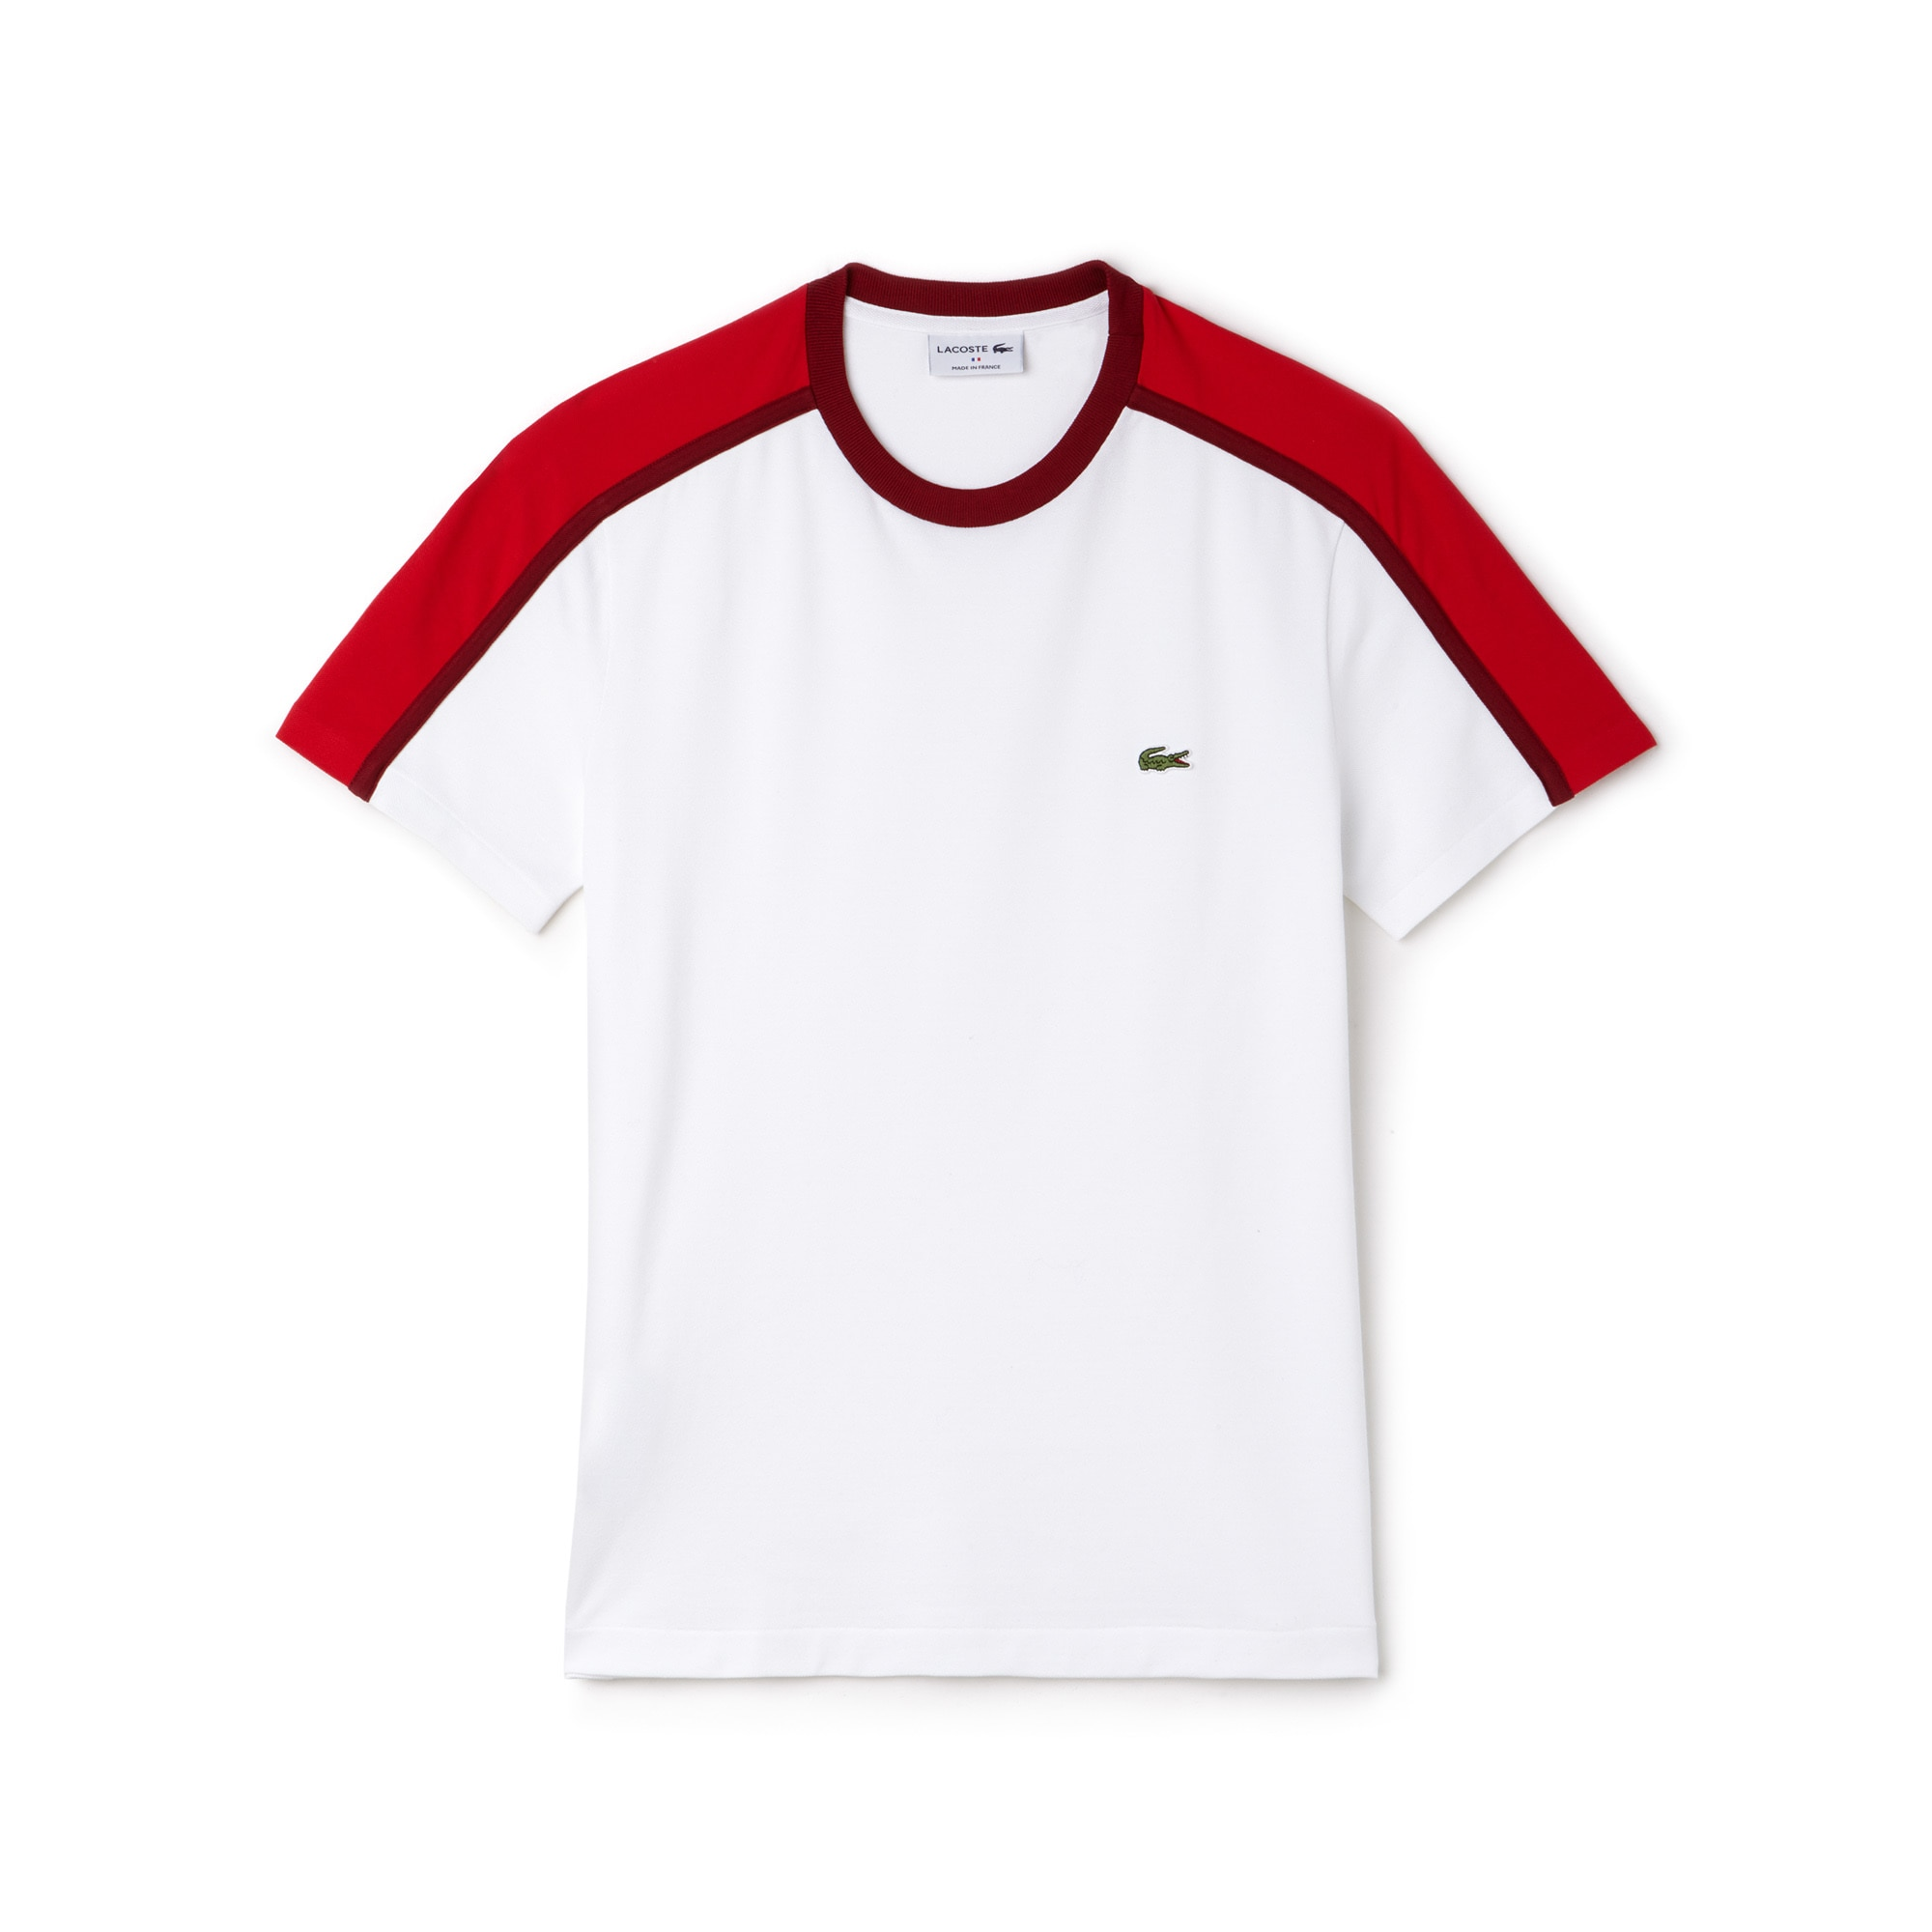 Men's Made in France Tech Piqué T-shirt